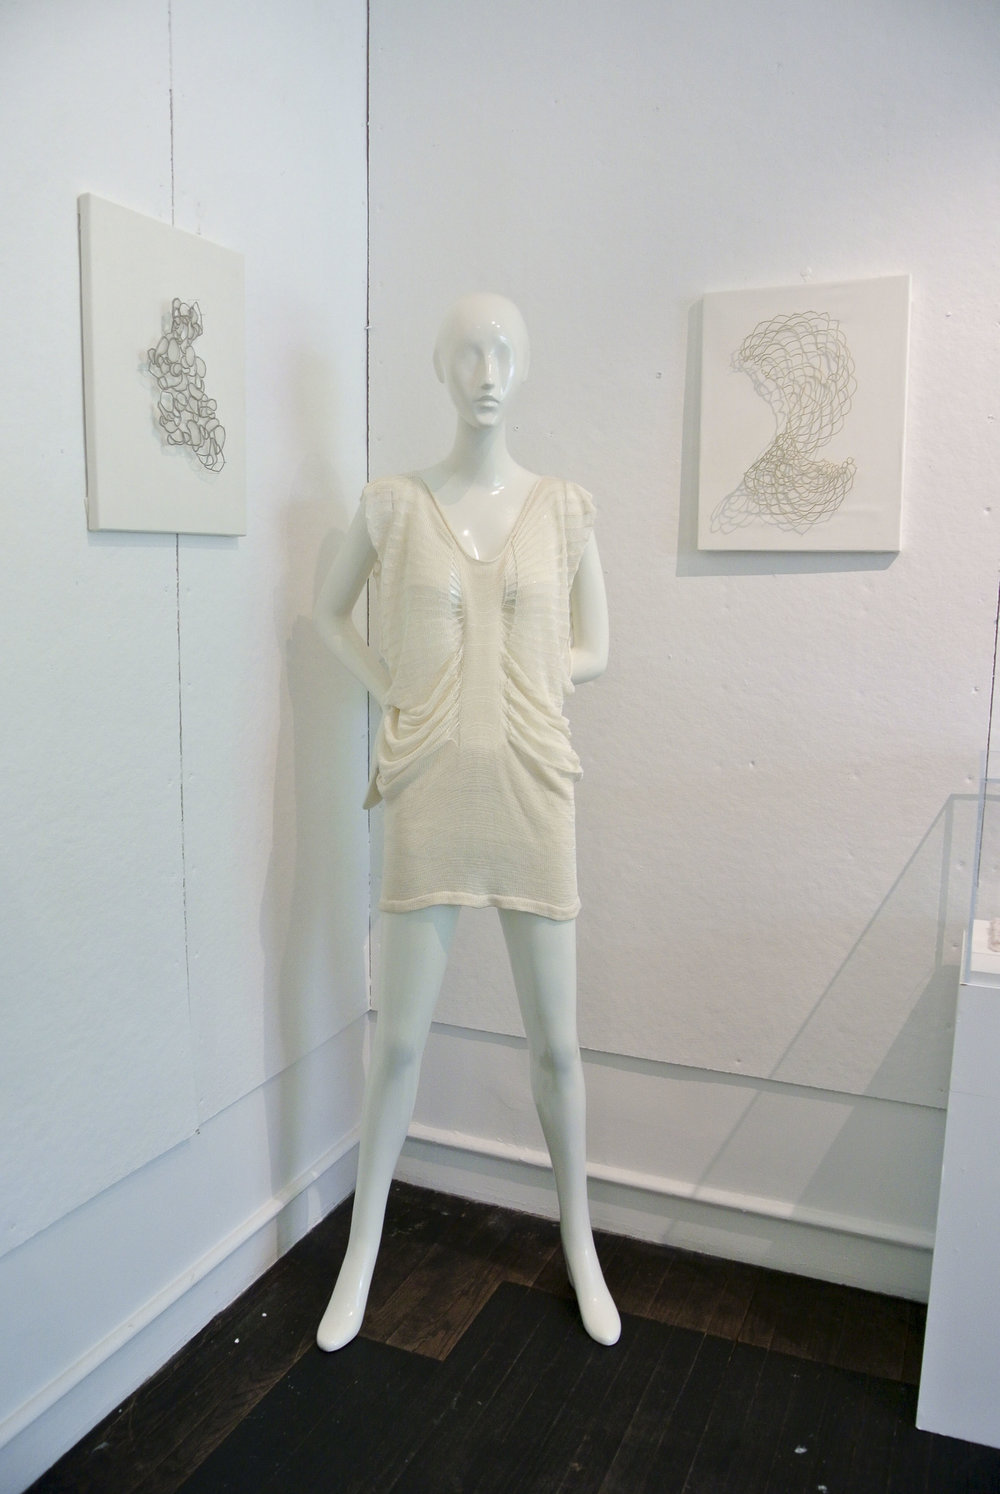 dresses on mannequins_3.JPG